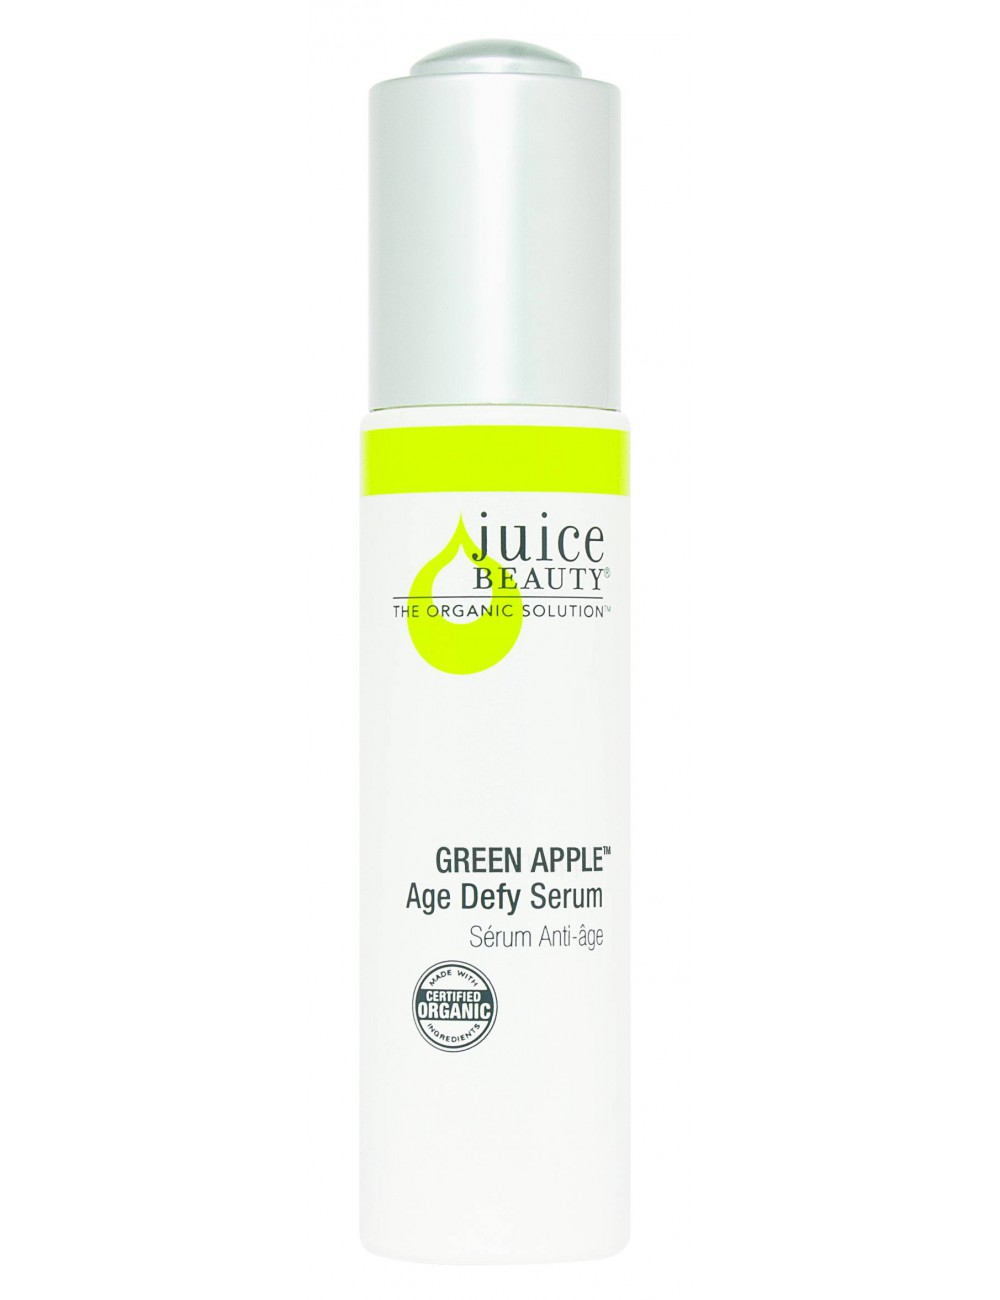 Juice Beauty Green Apple™ Age Defy Serum 30ml